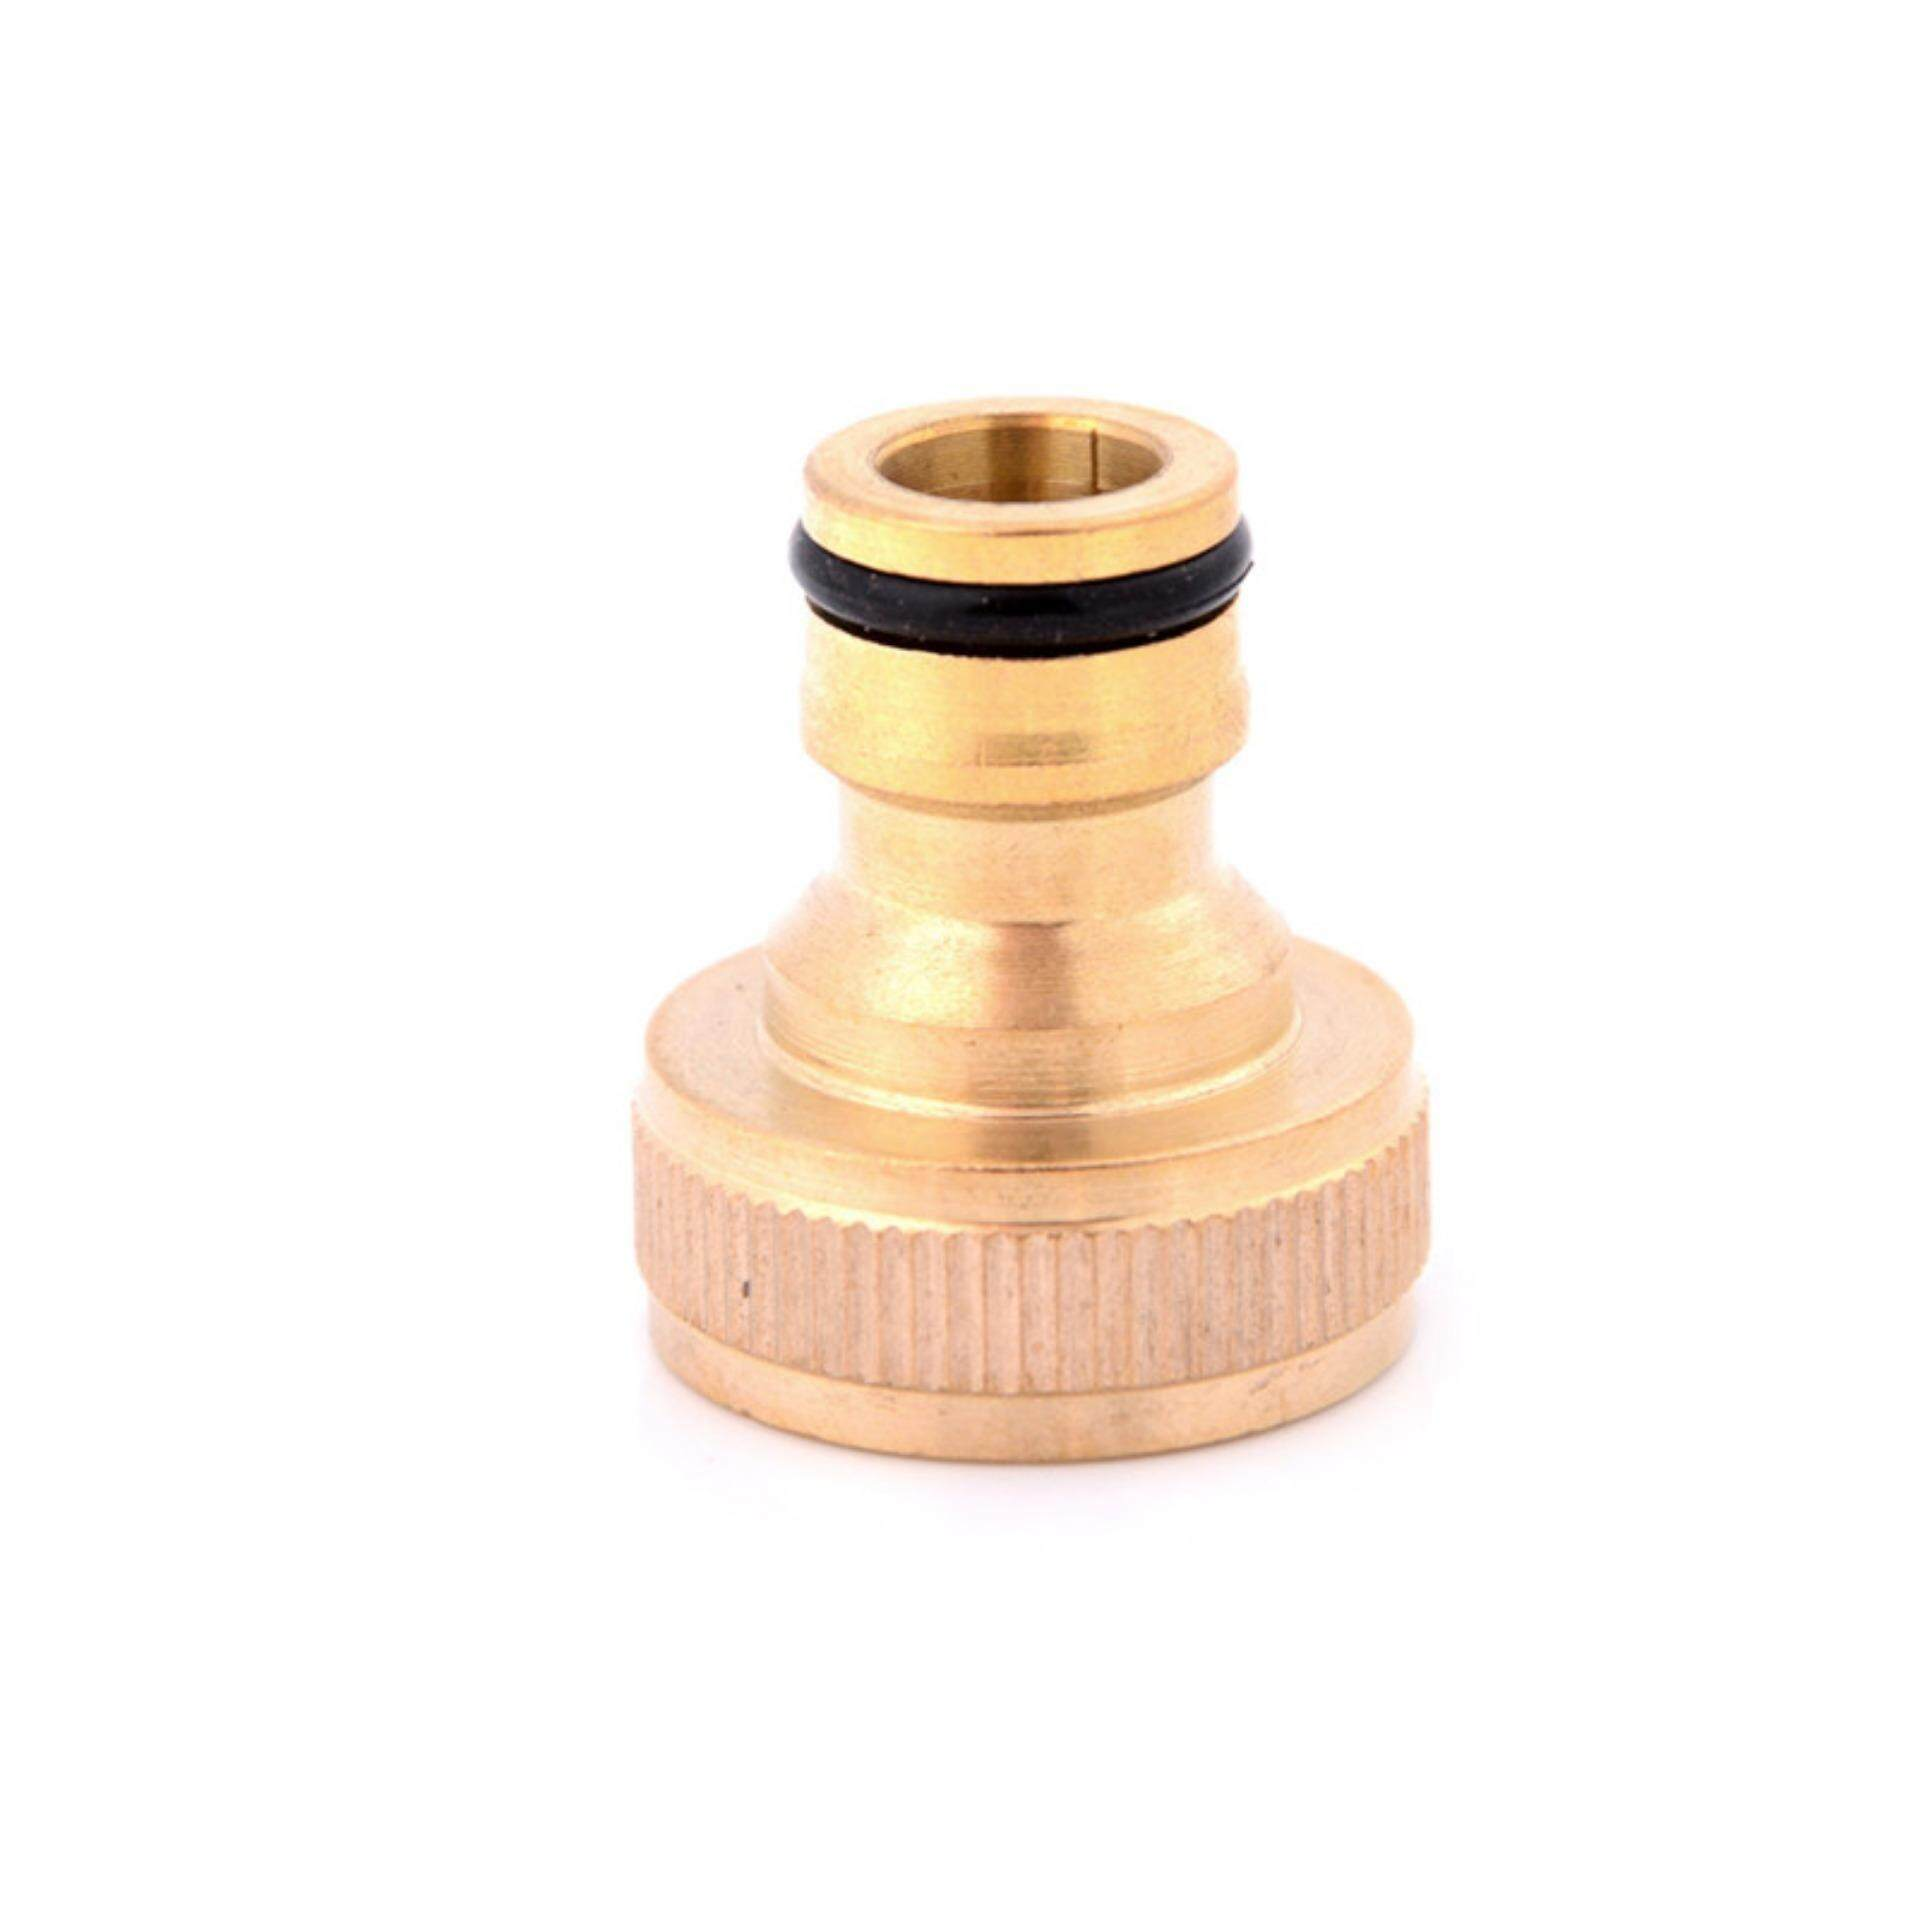 3/4 Brass Tap Adaptor Hose Pipe Fitting Tap Hosepipe Quick Connector